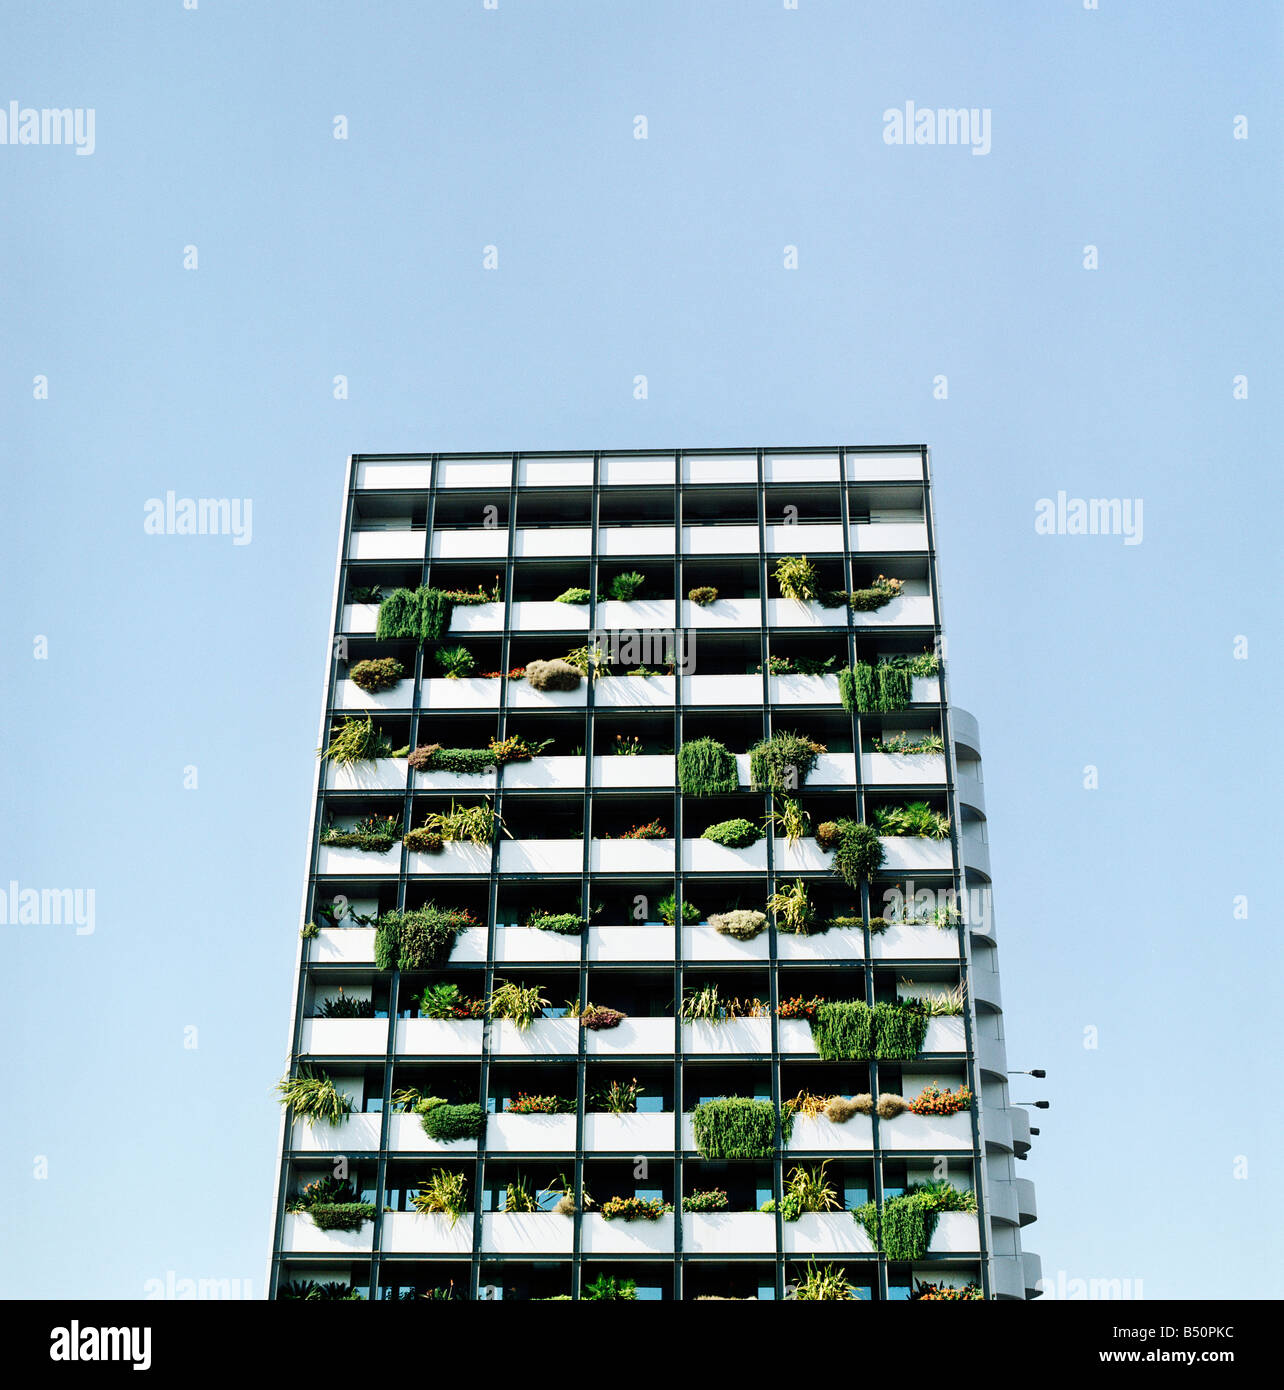 Low angle view of an apartment building Portugal - Stock Image